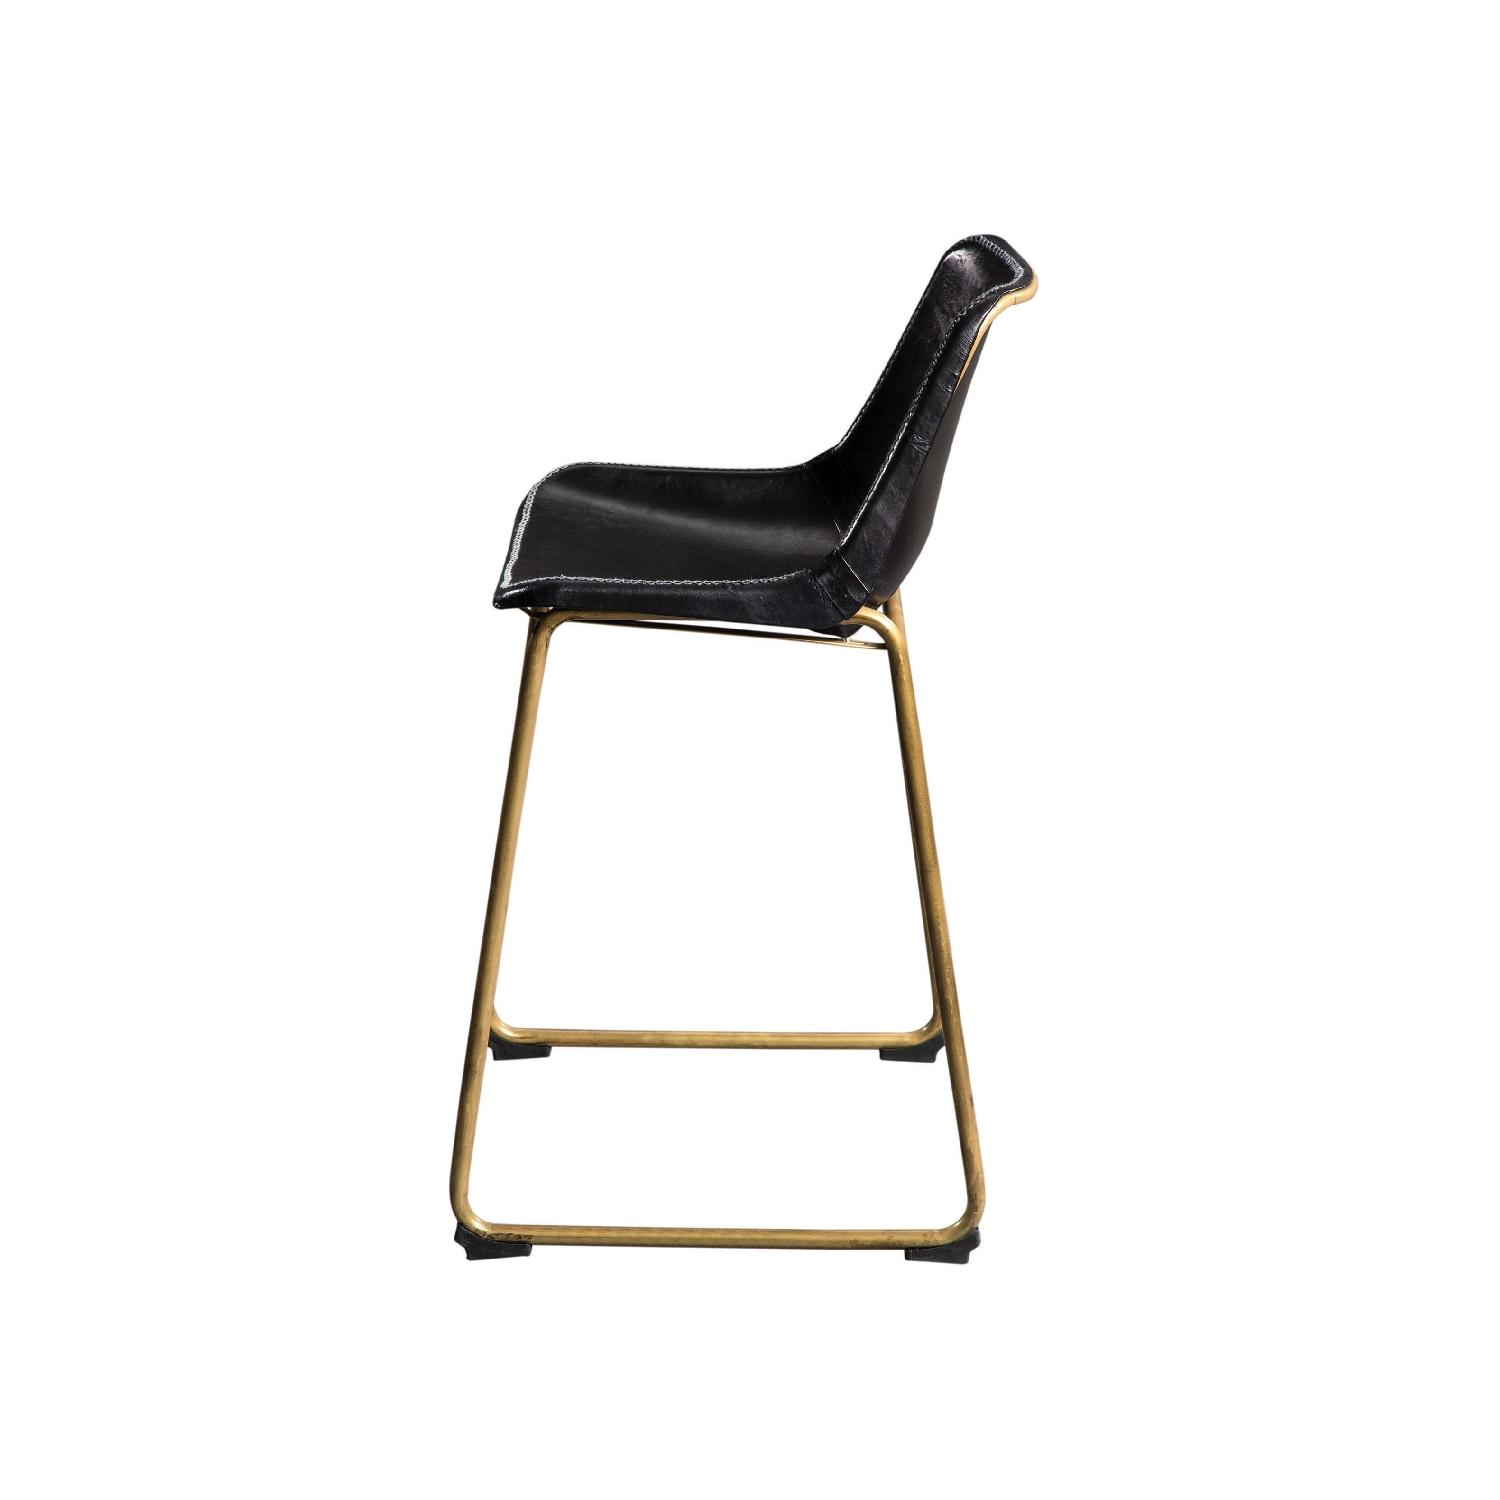 Counter Height Chair w/ Black Seat & Brass Base - image-3